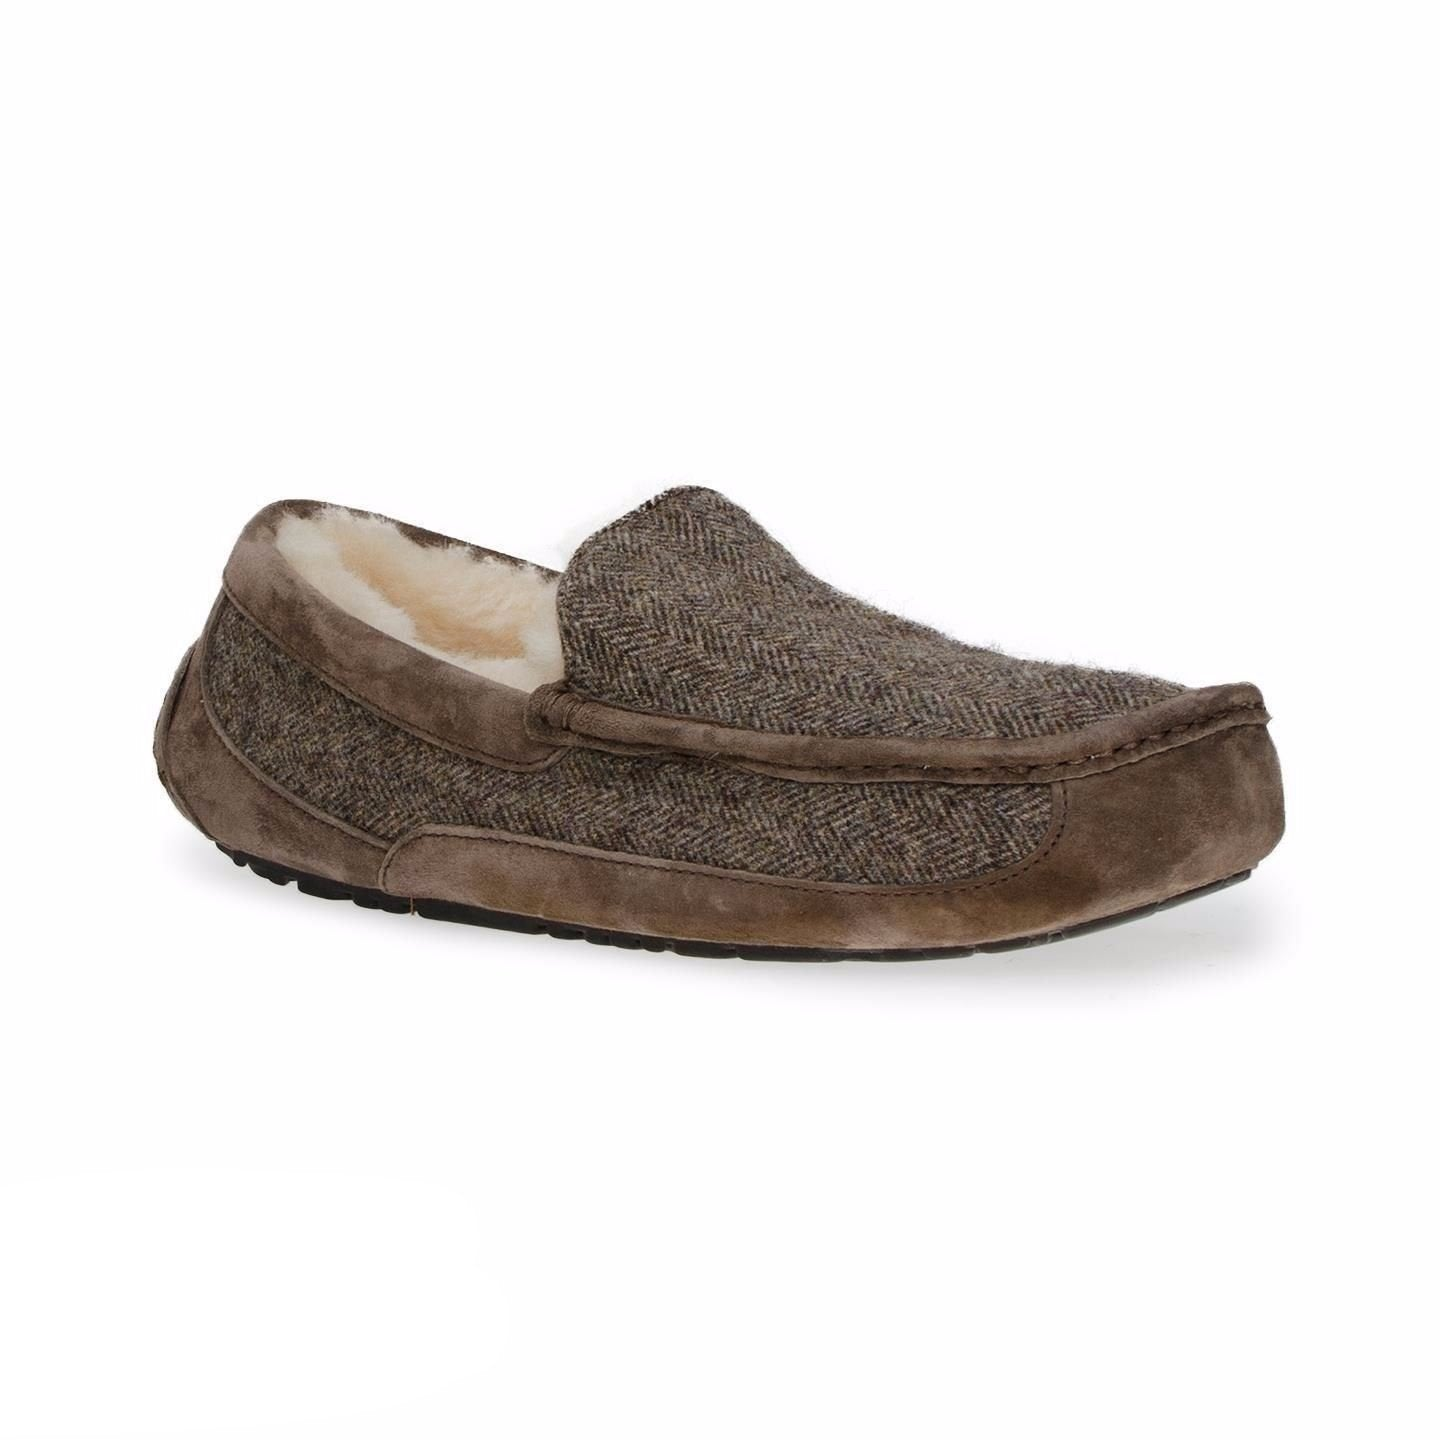 3dad91d08a8 UGG Ascot Tweed Stout Slippers